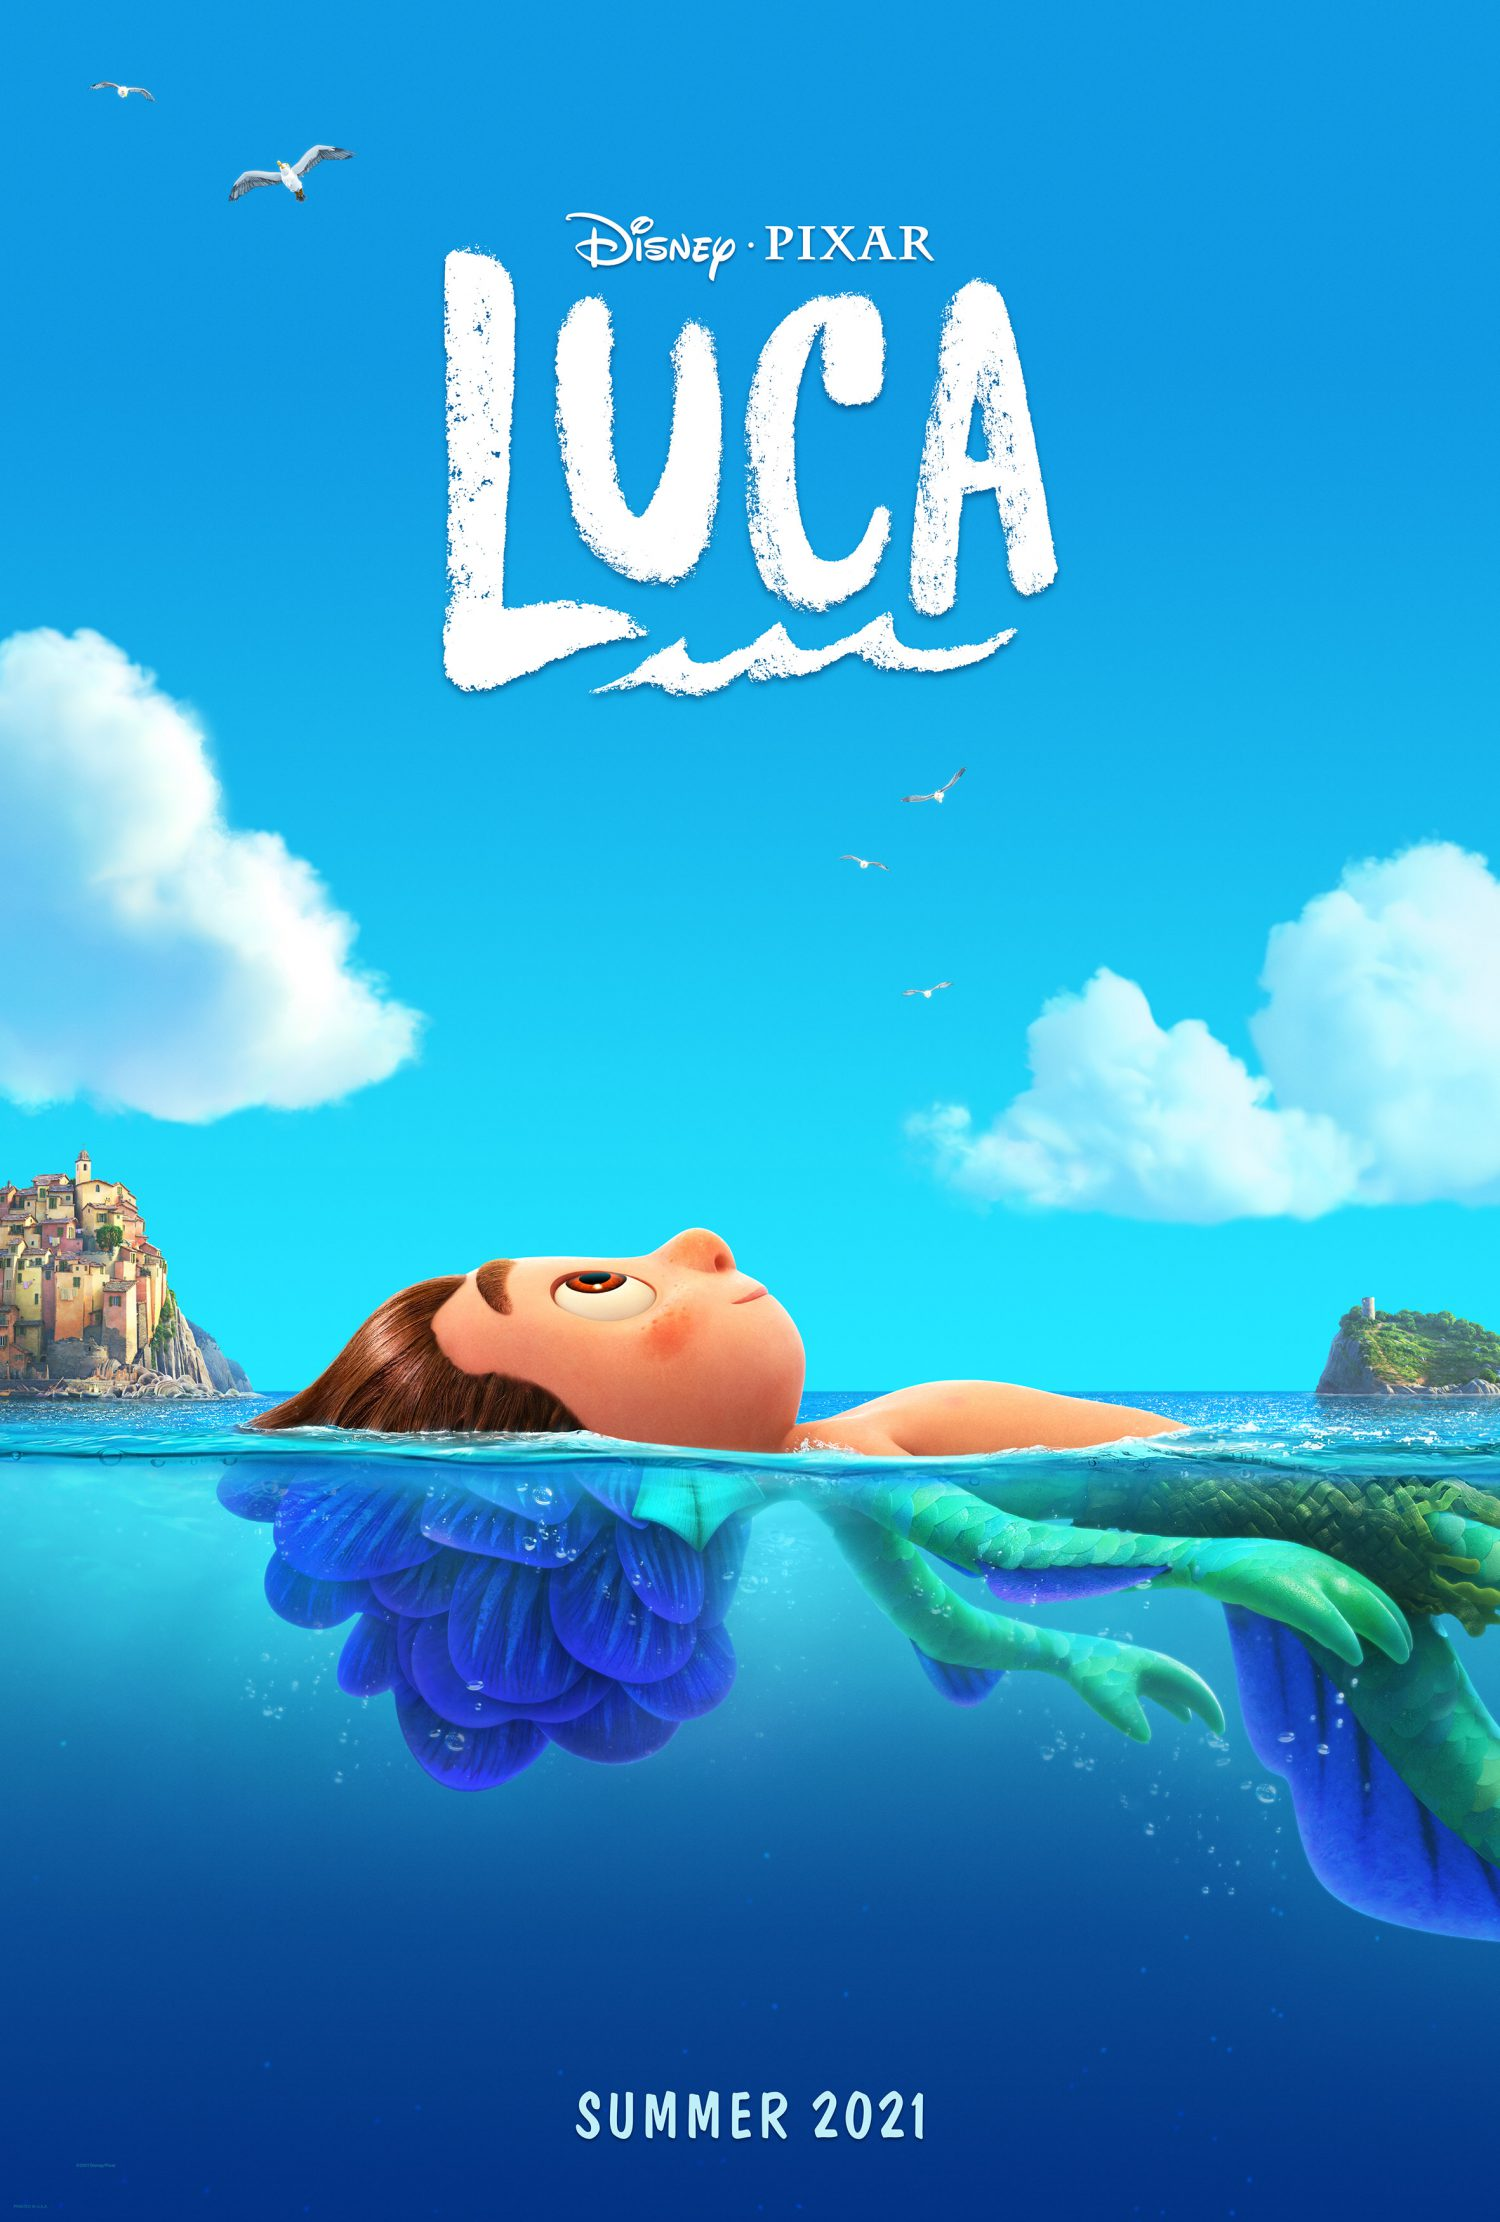 Watch the Luca movie trailer for a look at the latest from Disney and Pixar.